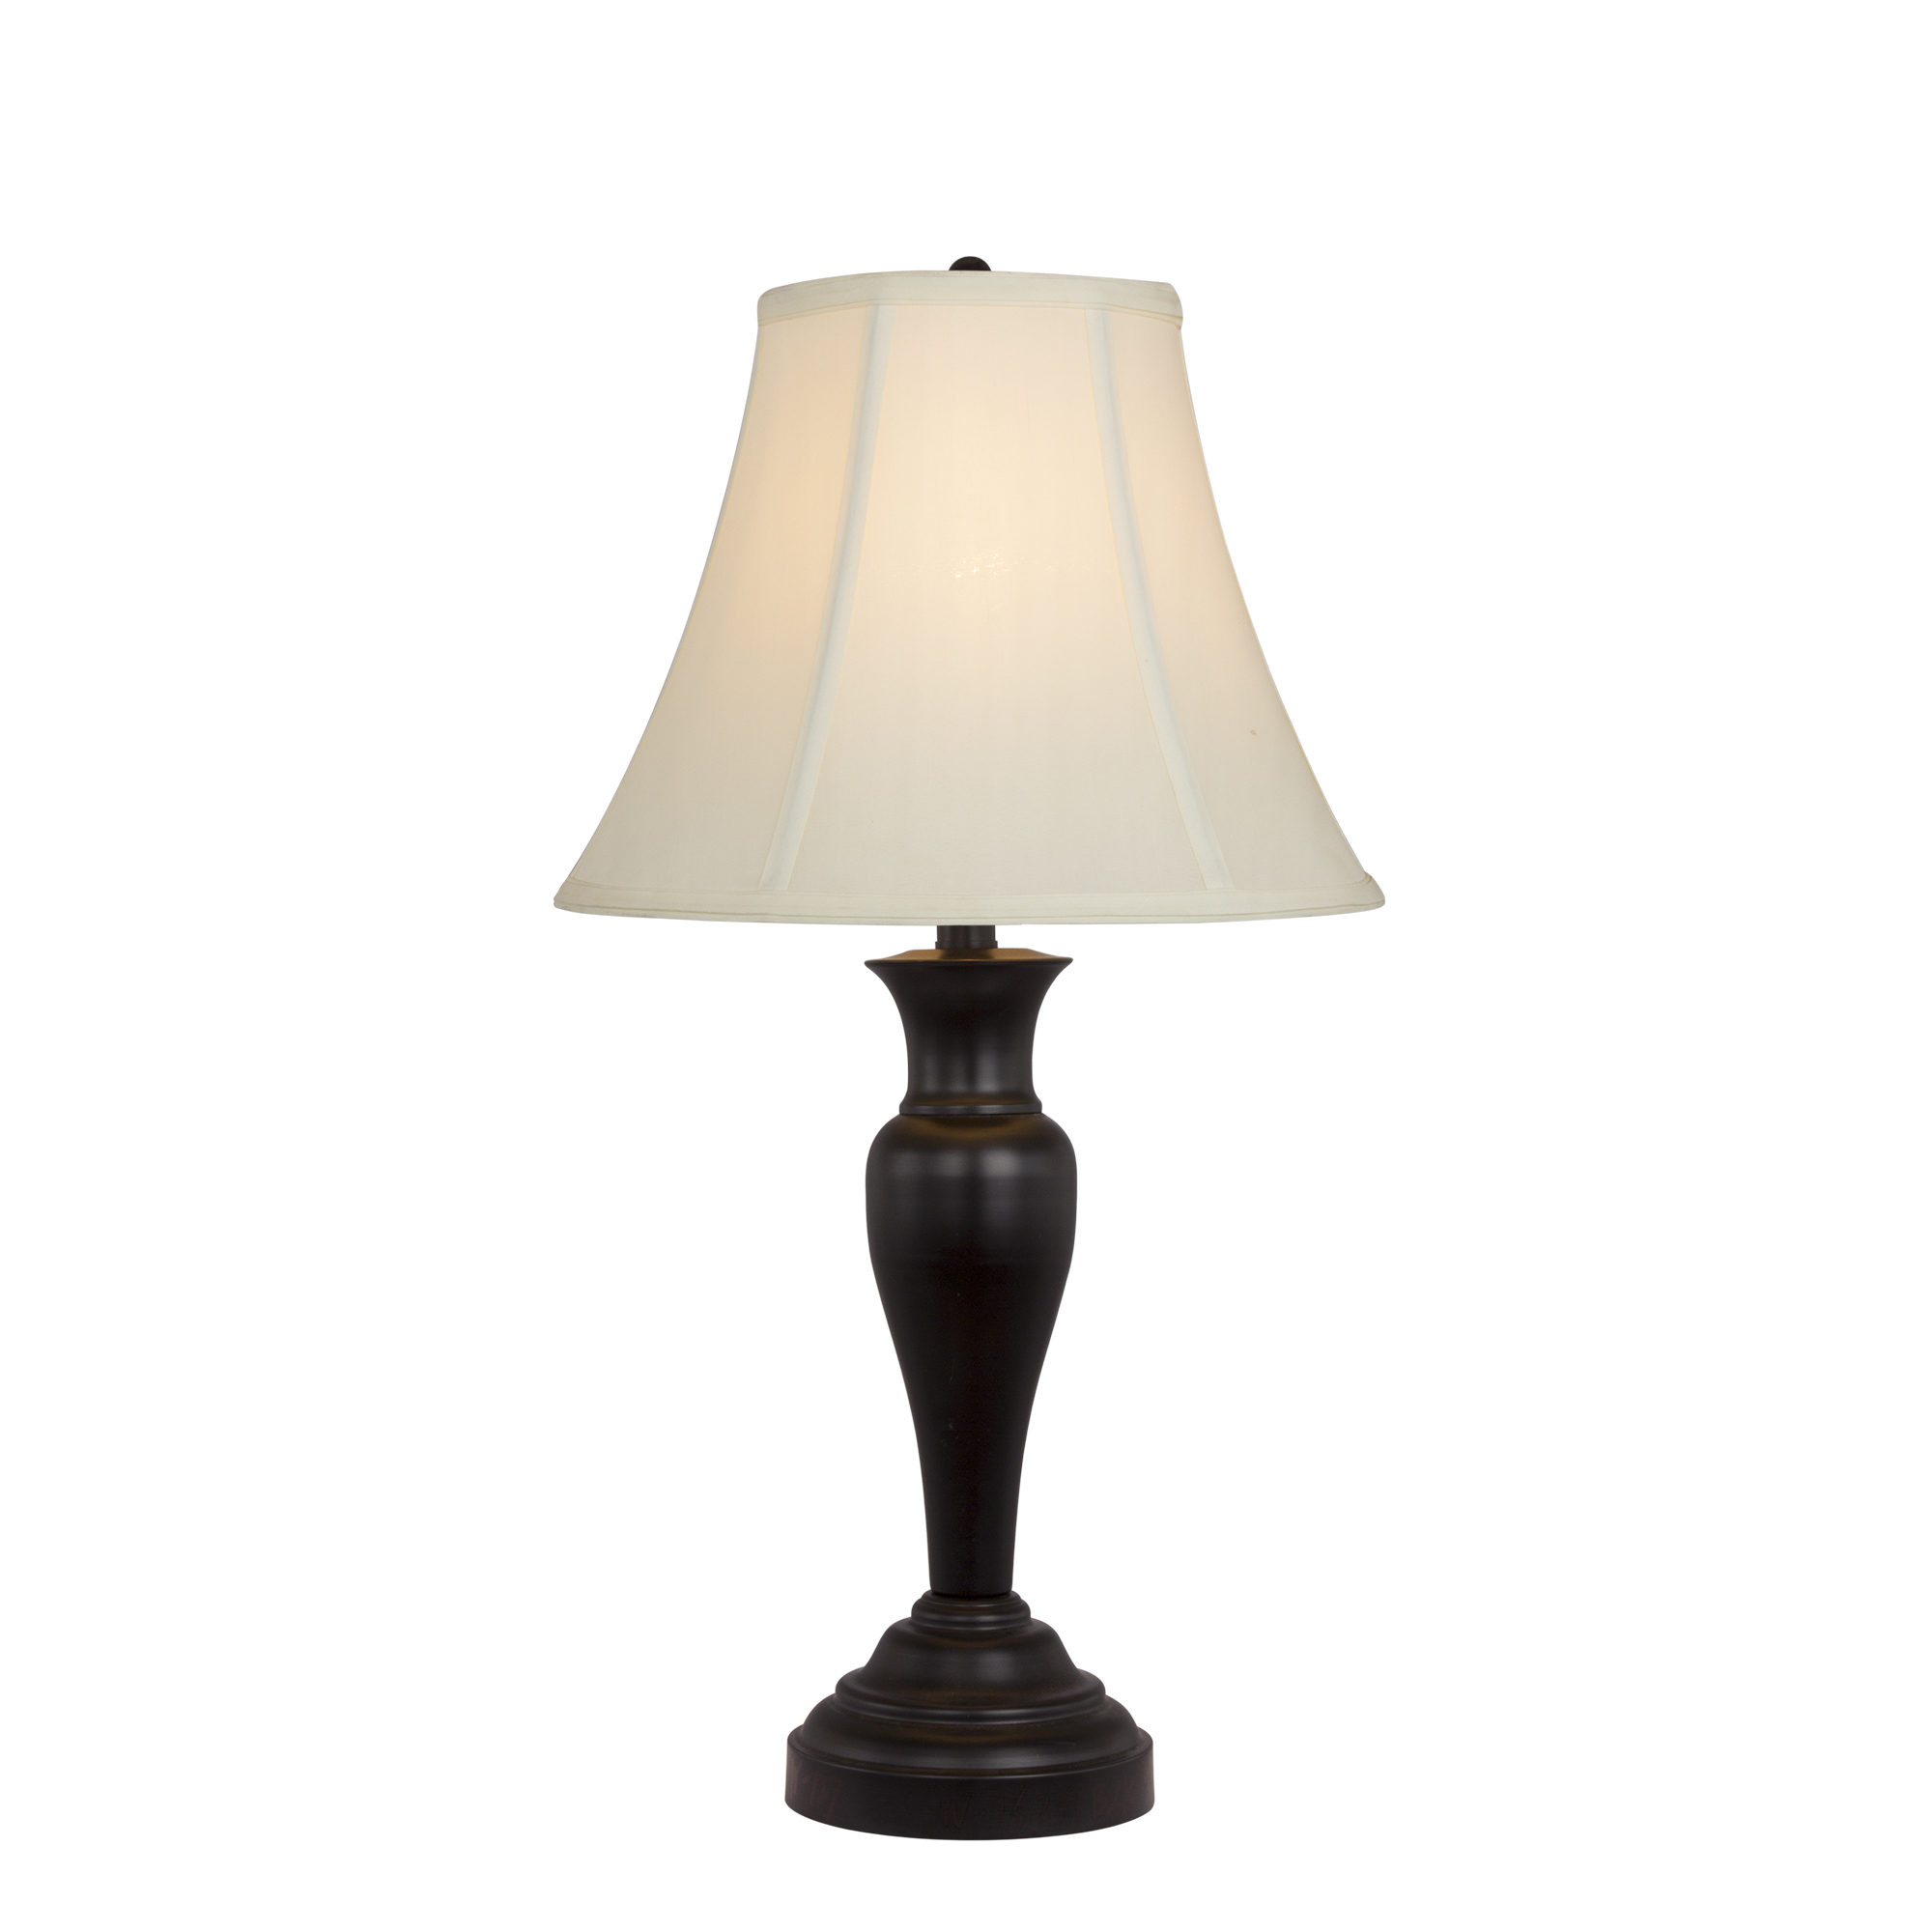 Fangio Lighting's #127 30 inch Metal Table Lamp in Black Finish